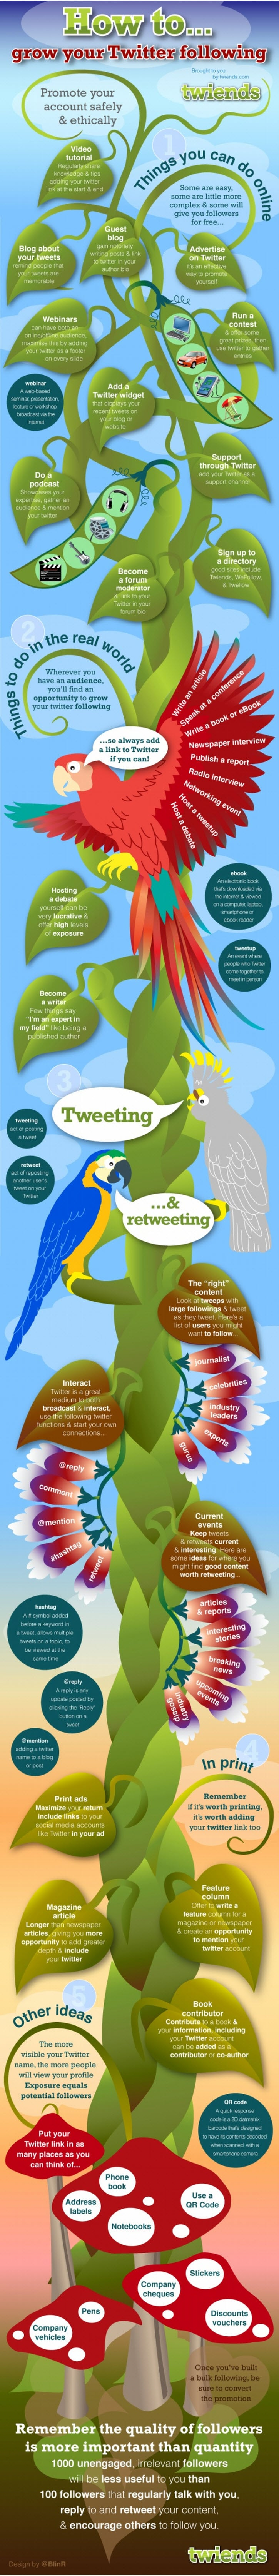 40 Legit Ways To Increase Your Twitter Followers [Infographic]